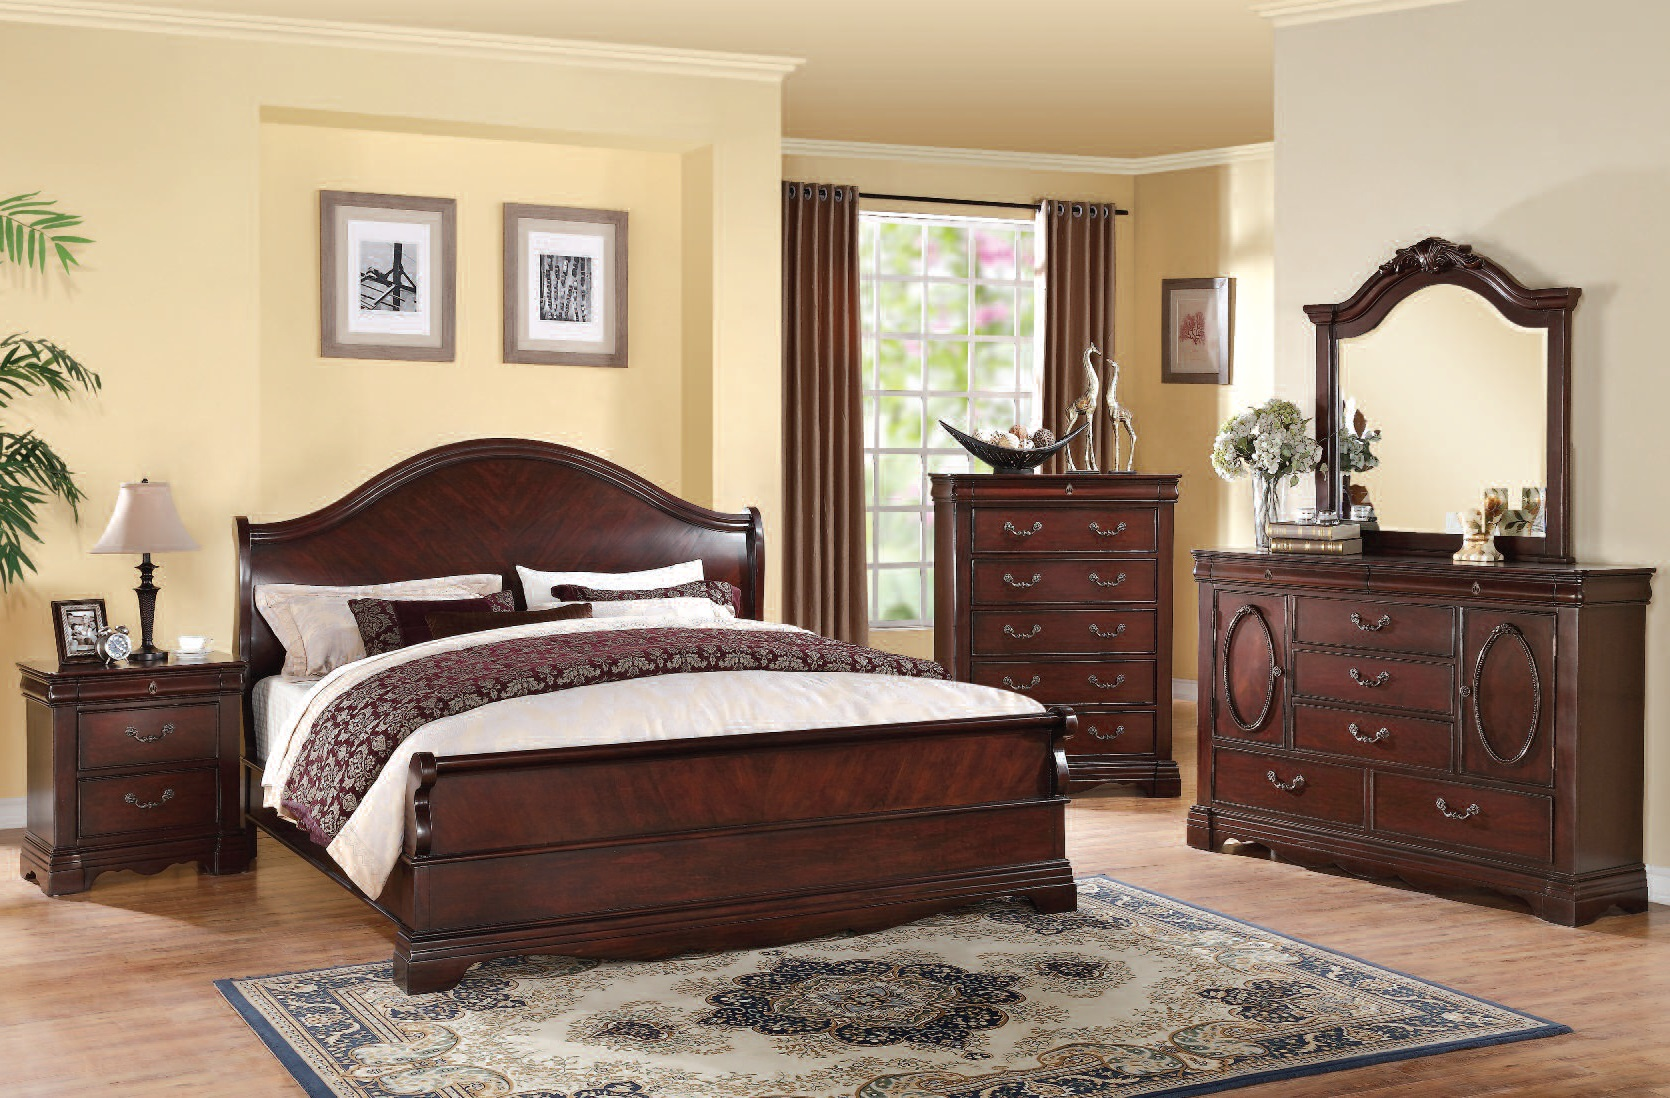 Acme furniture beverly dark cherry master bedroom set the classy home No dresser in master bedroom